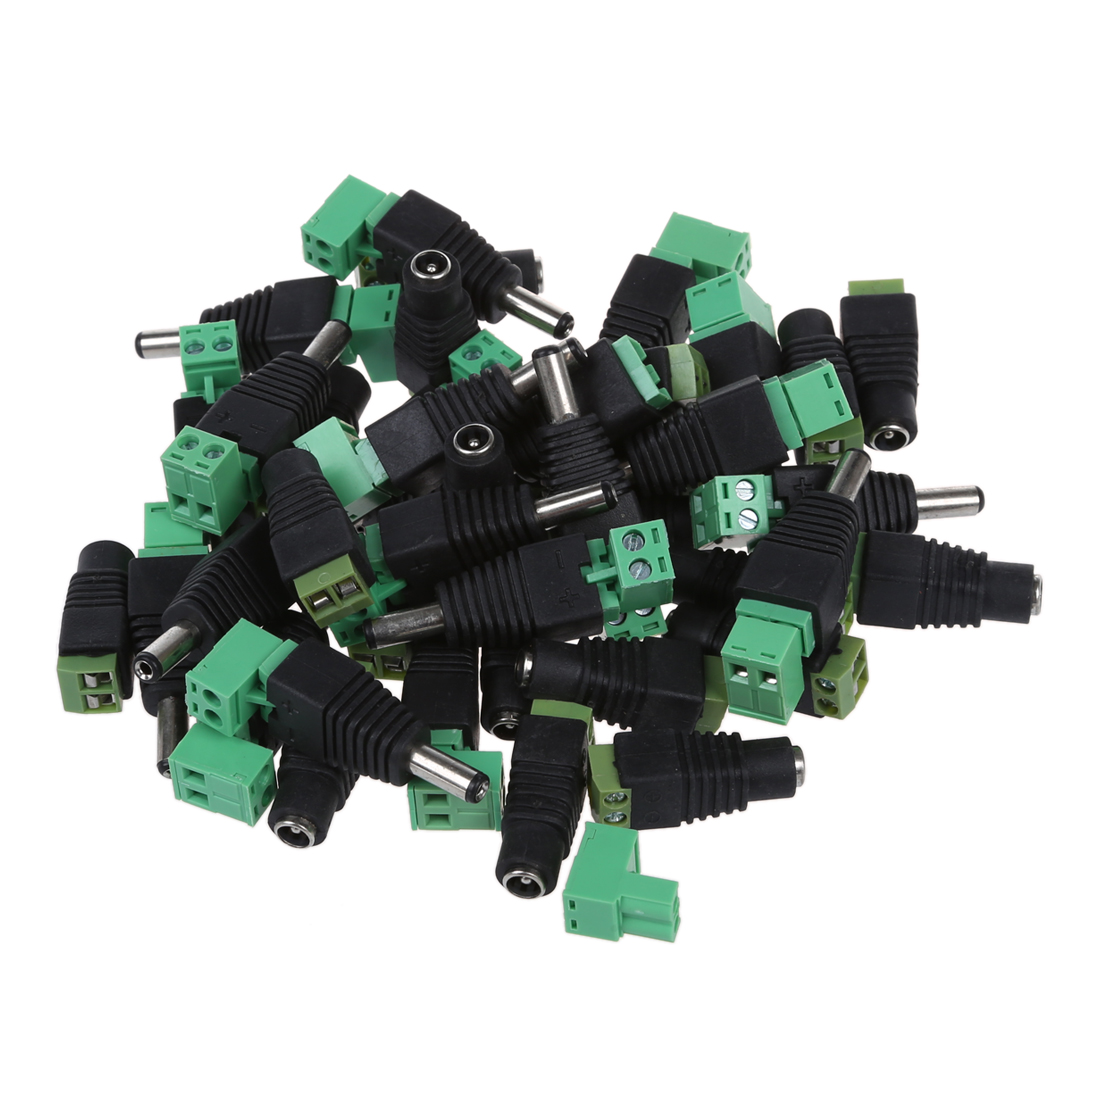 20 Pairs Male & Female 2.1x5.5mm DC Power Jack Plug Adapter Connector for CCTV zinuo dc12v 5pcs male 5pcs female 2 1x5 5mm dc power plug jack adapter connector plug for cctv single color led strip light